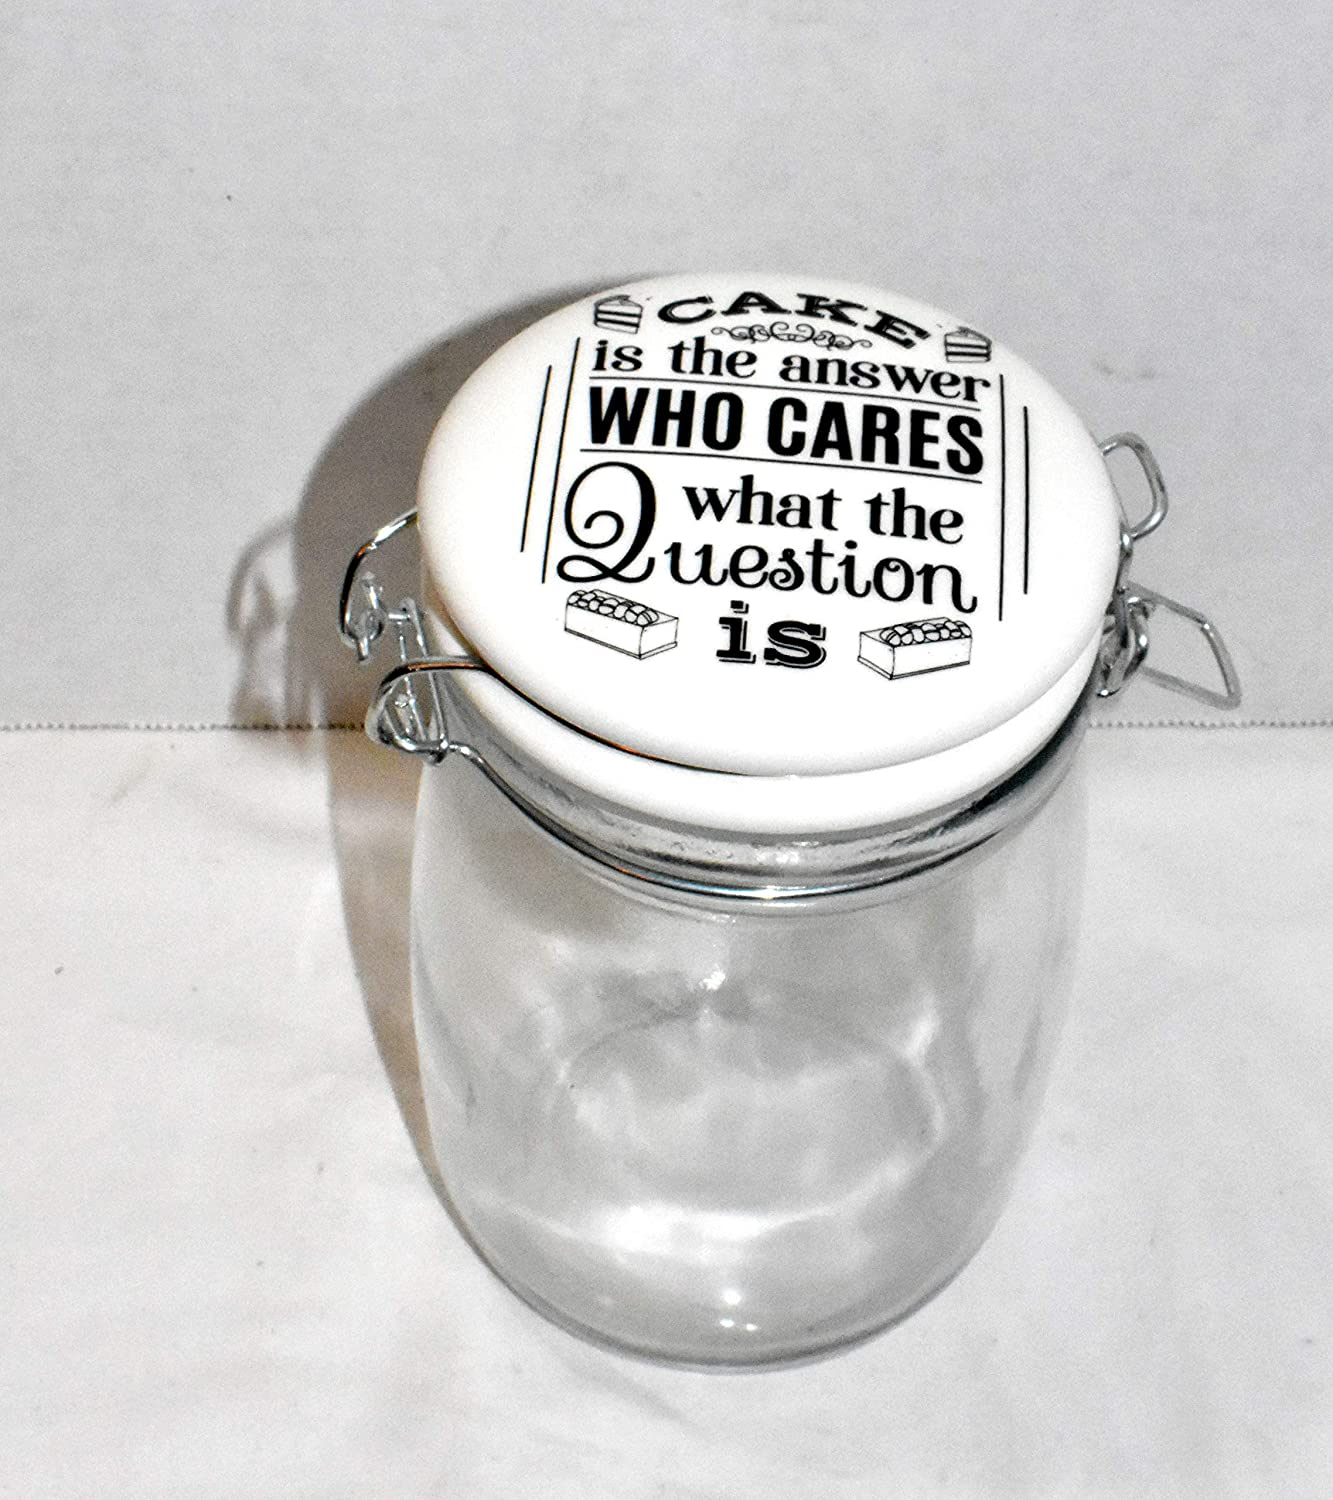 25 Home Decor New 34oz All items Shipping included in the store Cake is What WHO Answer Cares QUE The